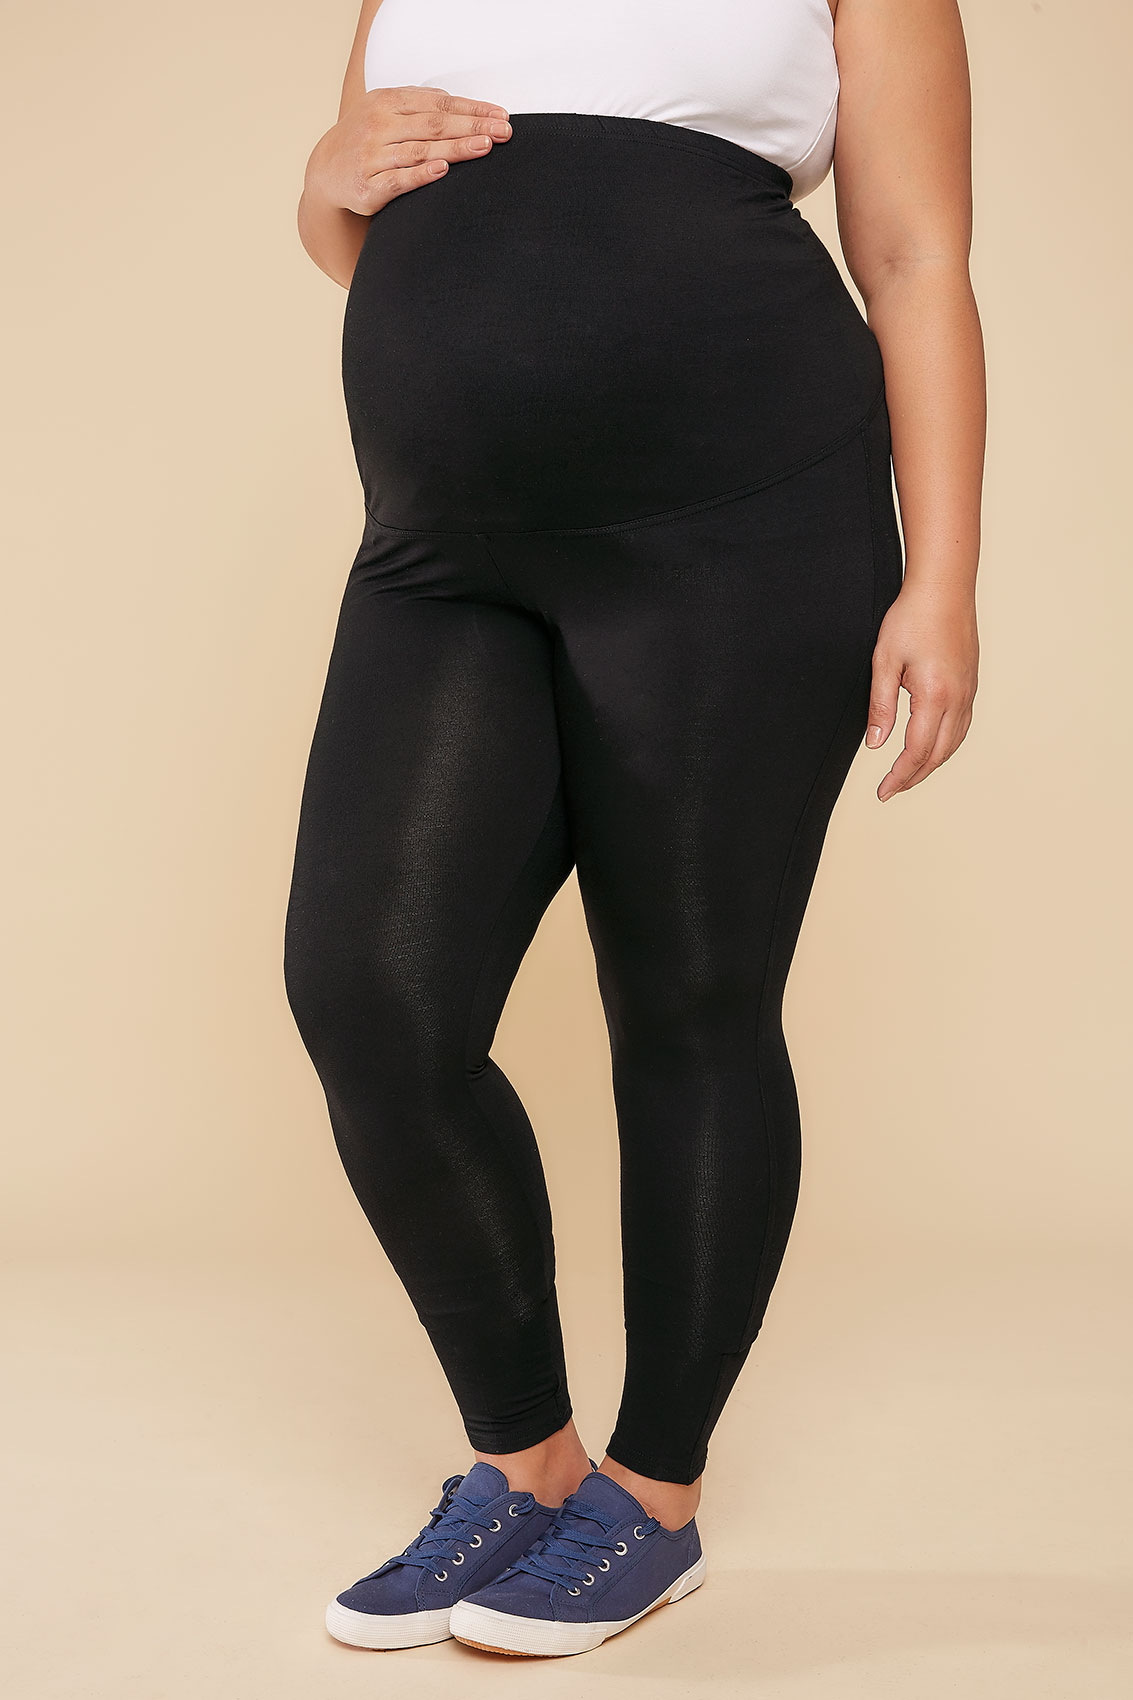 Rooms: BUMP IT UP MATERNITY Black Viscose Elastane Leggings With